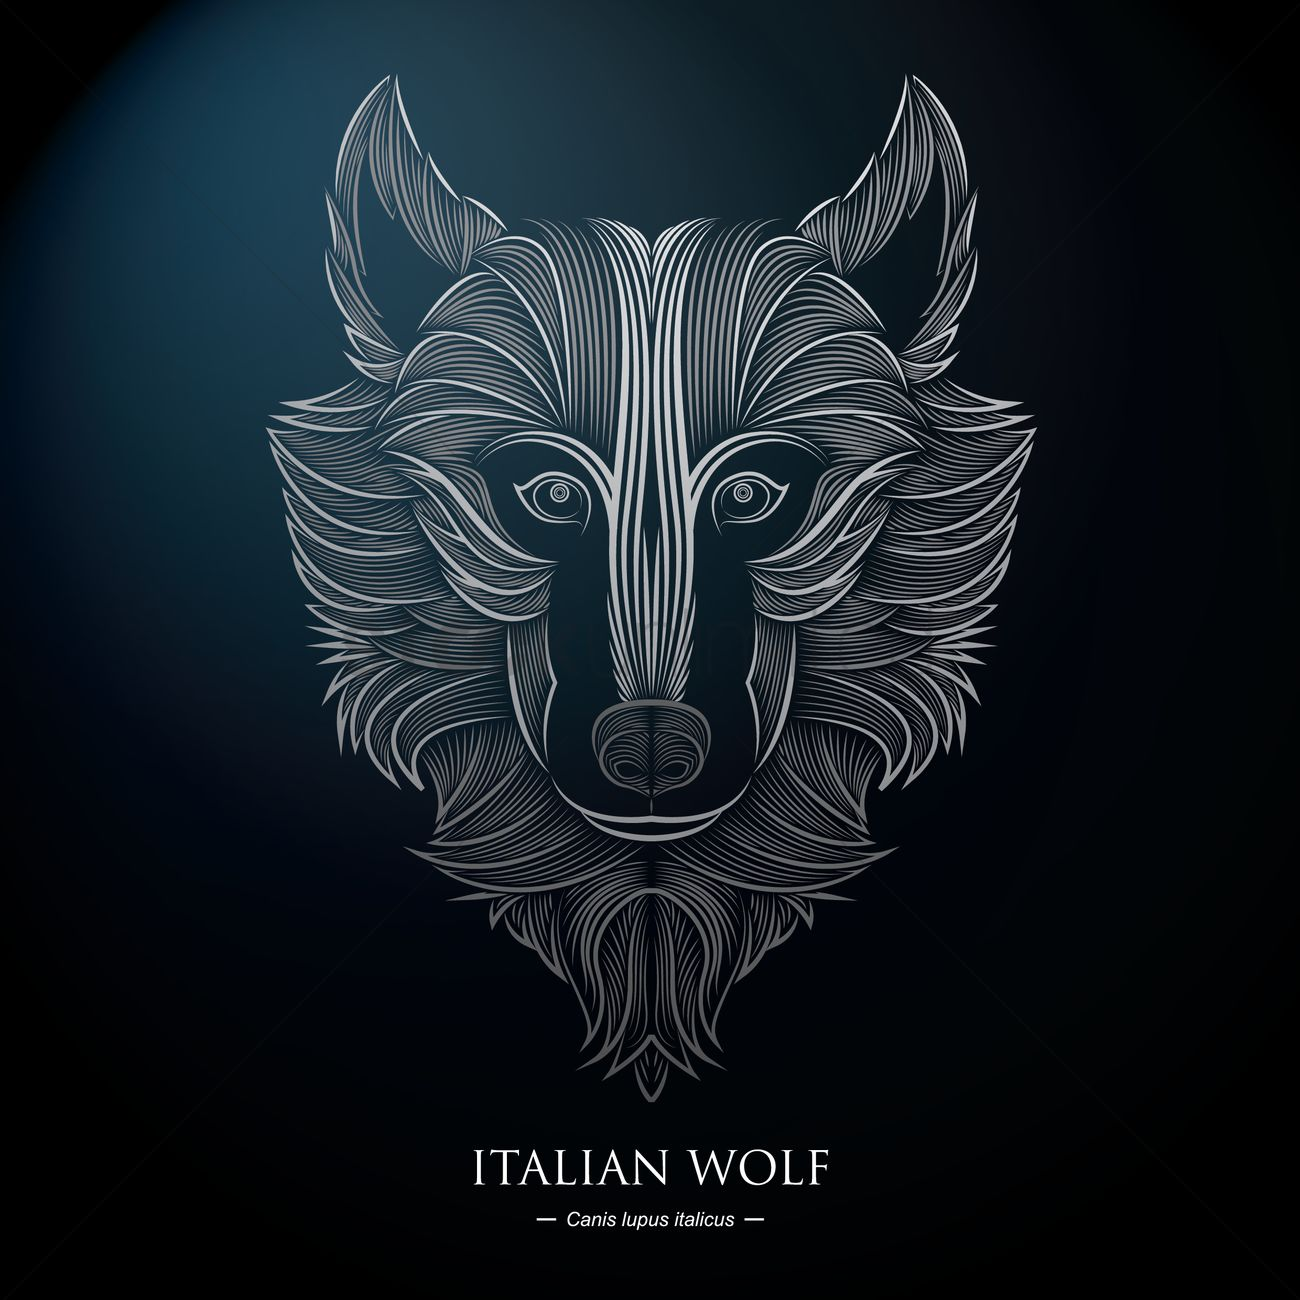 Italian Wolf Background Vector Image 1576100 Stockunlimited